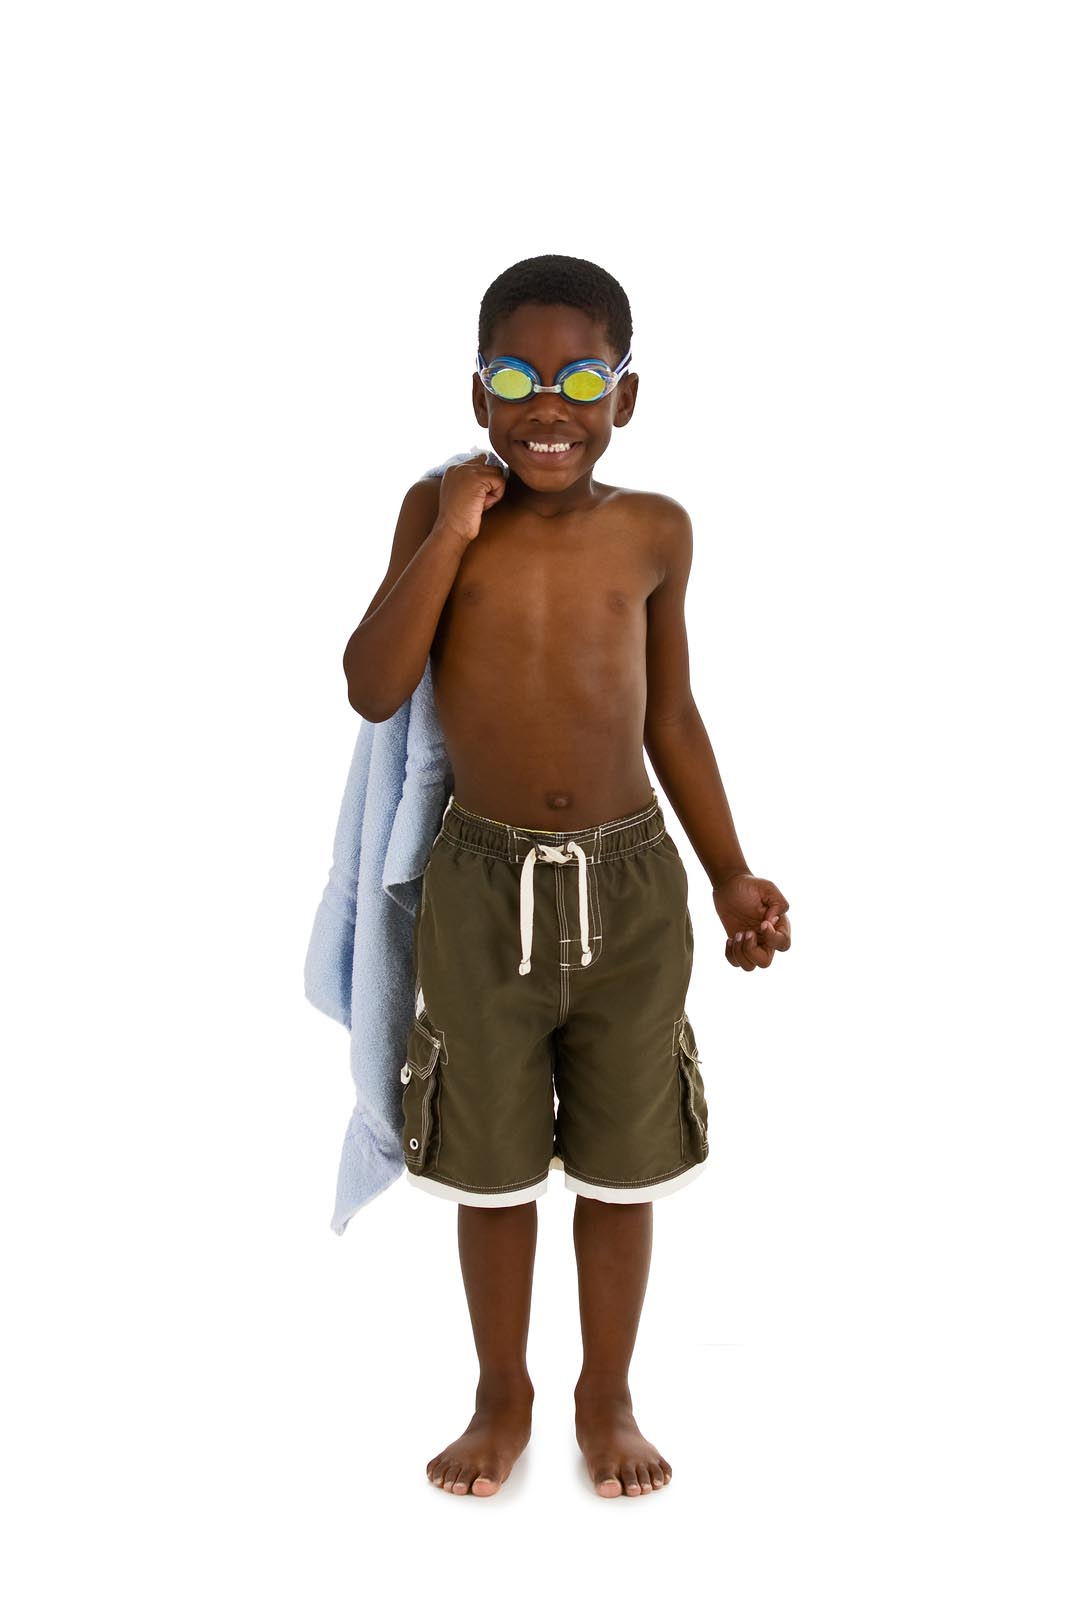 A young African American boy wearing swim trunks and goggles and carrying a towel. Isolated on a white background.